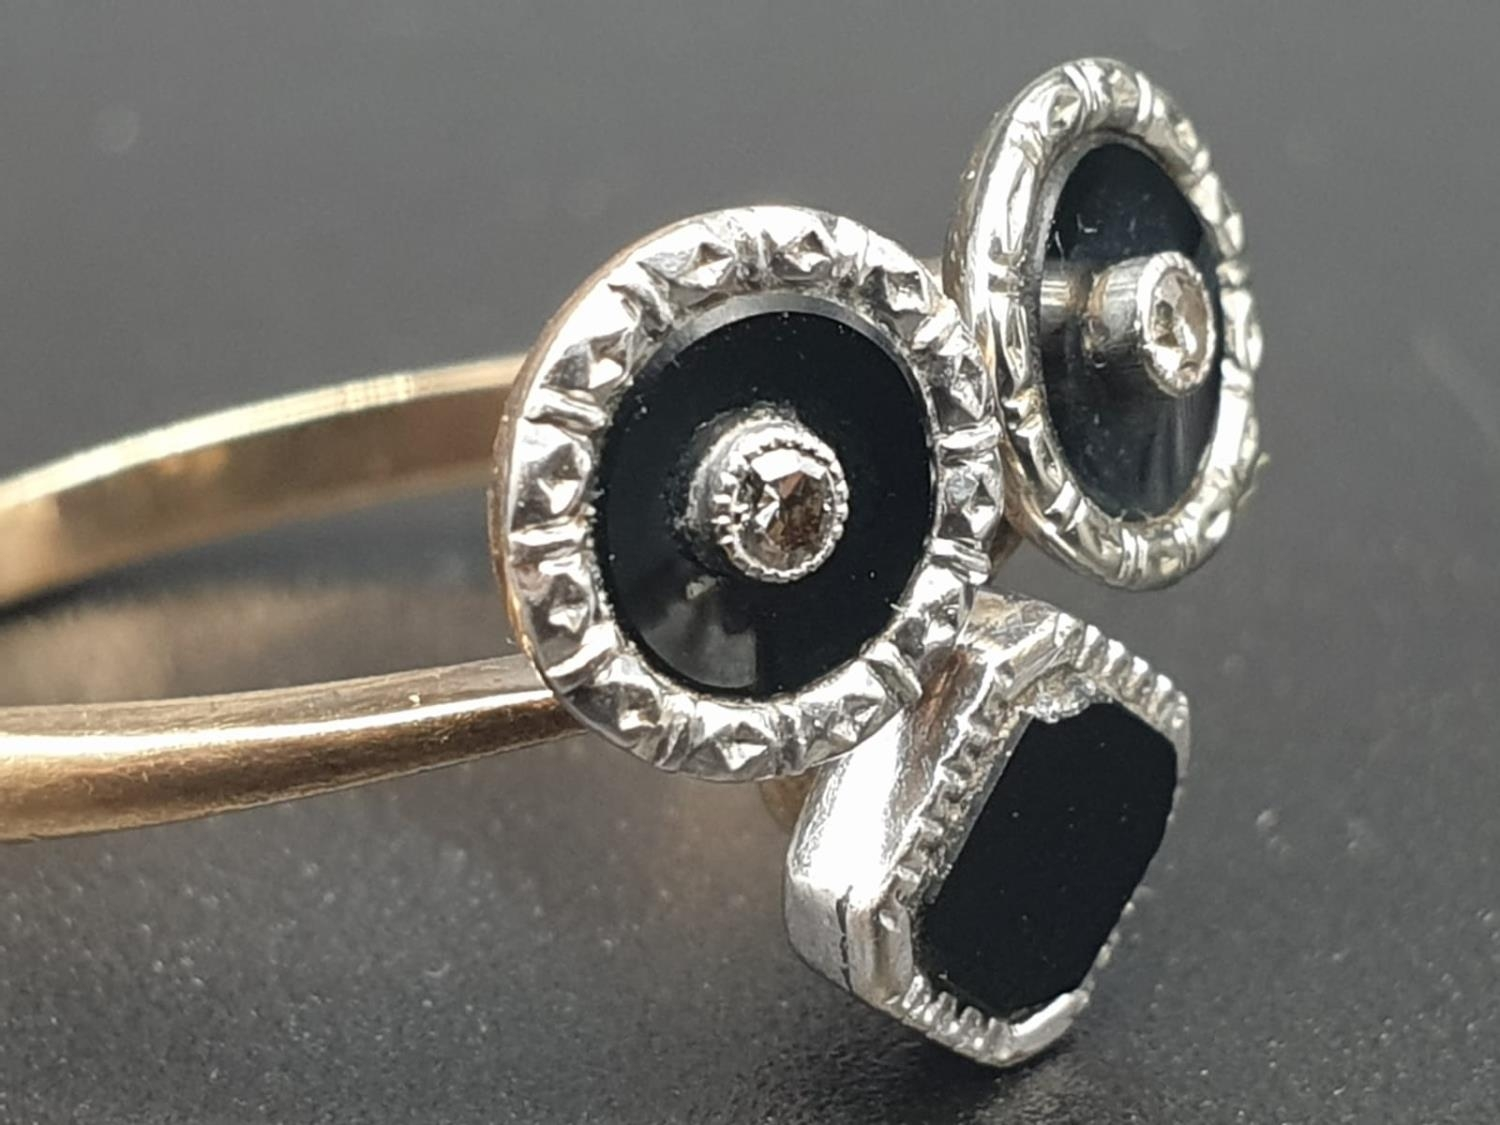 A 9K GOLD RING WITH BLACK ENAMEL AND DIAMONDS USED TO FORM THE SHAPE OF A FACE. 3.3gms size O - Image 2 of 6